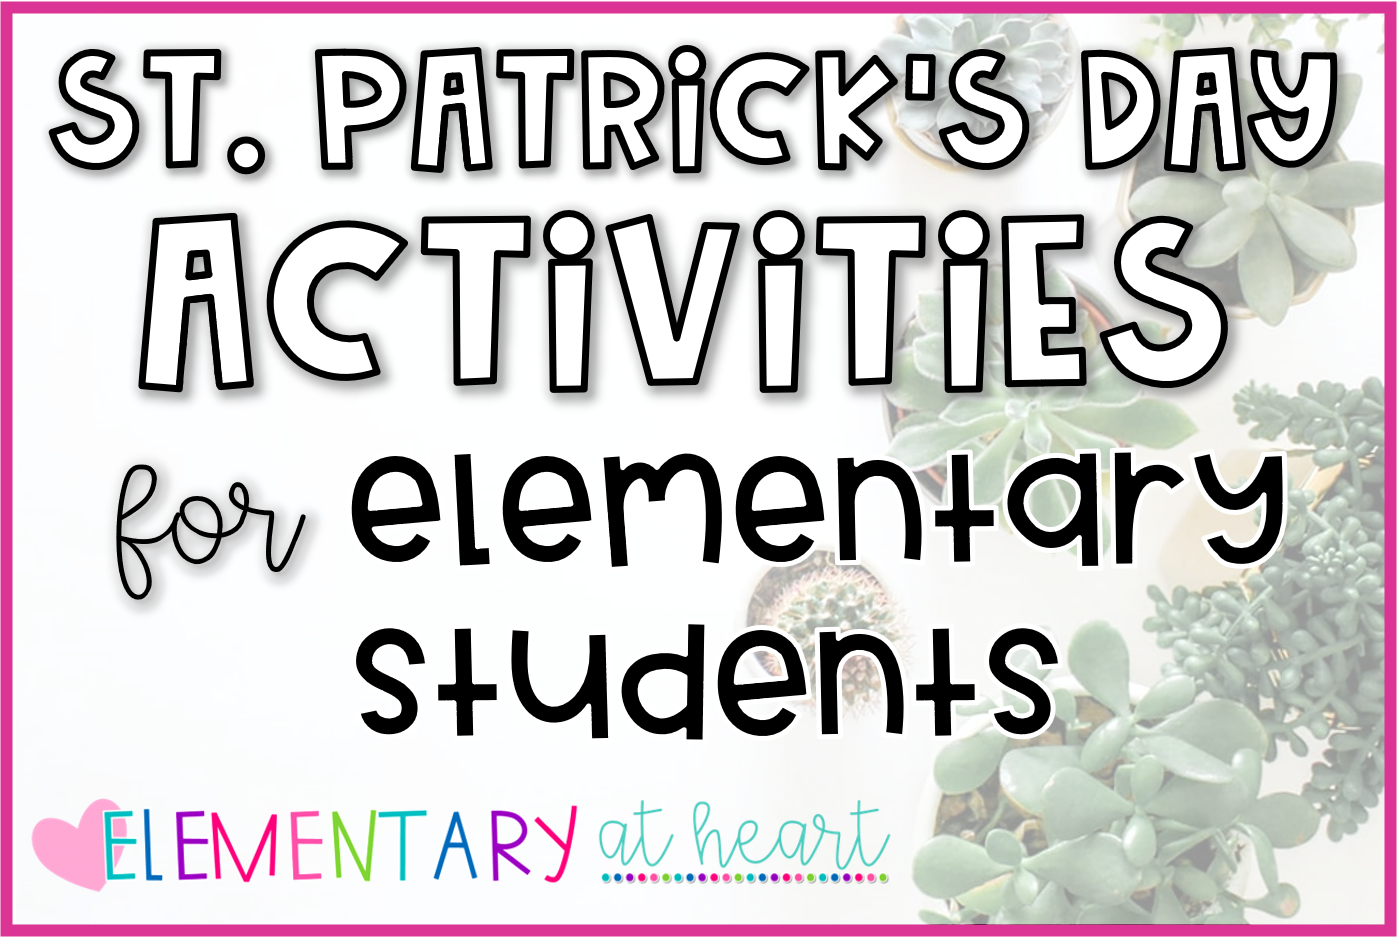 st-patricks-day-activities-for-elementary-students